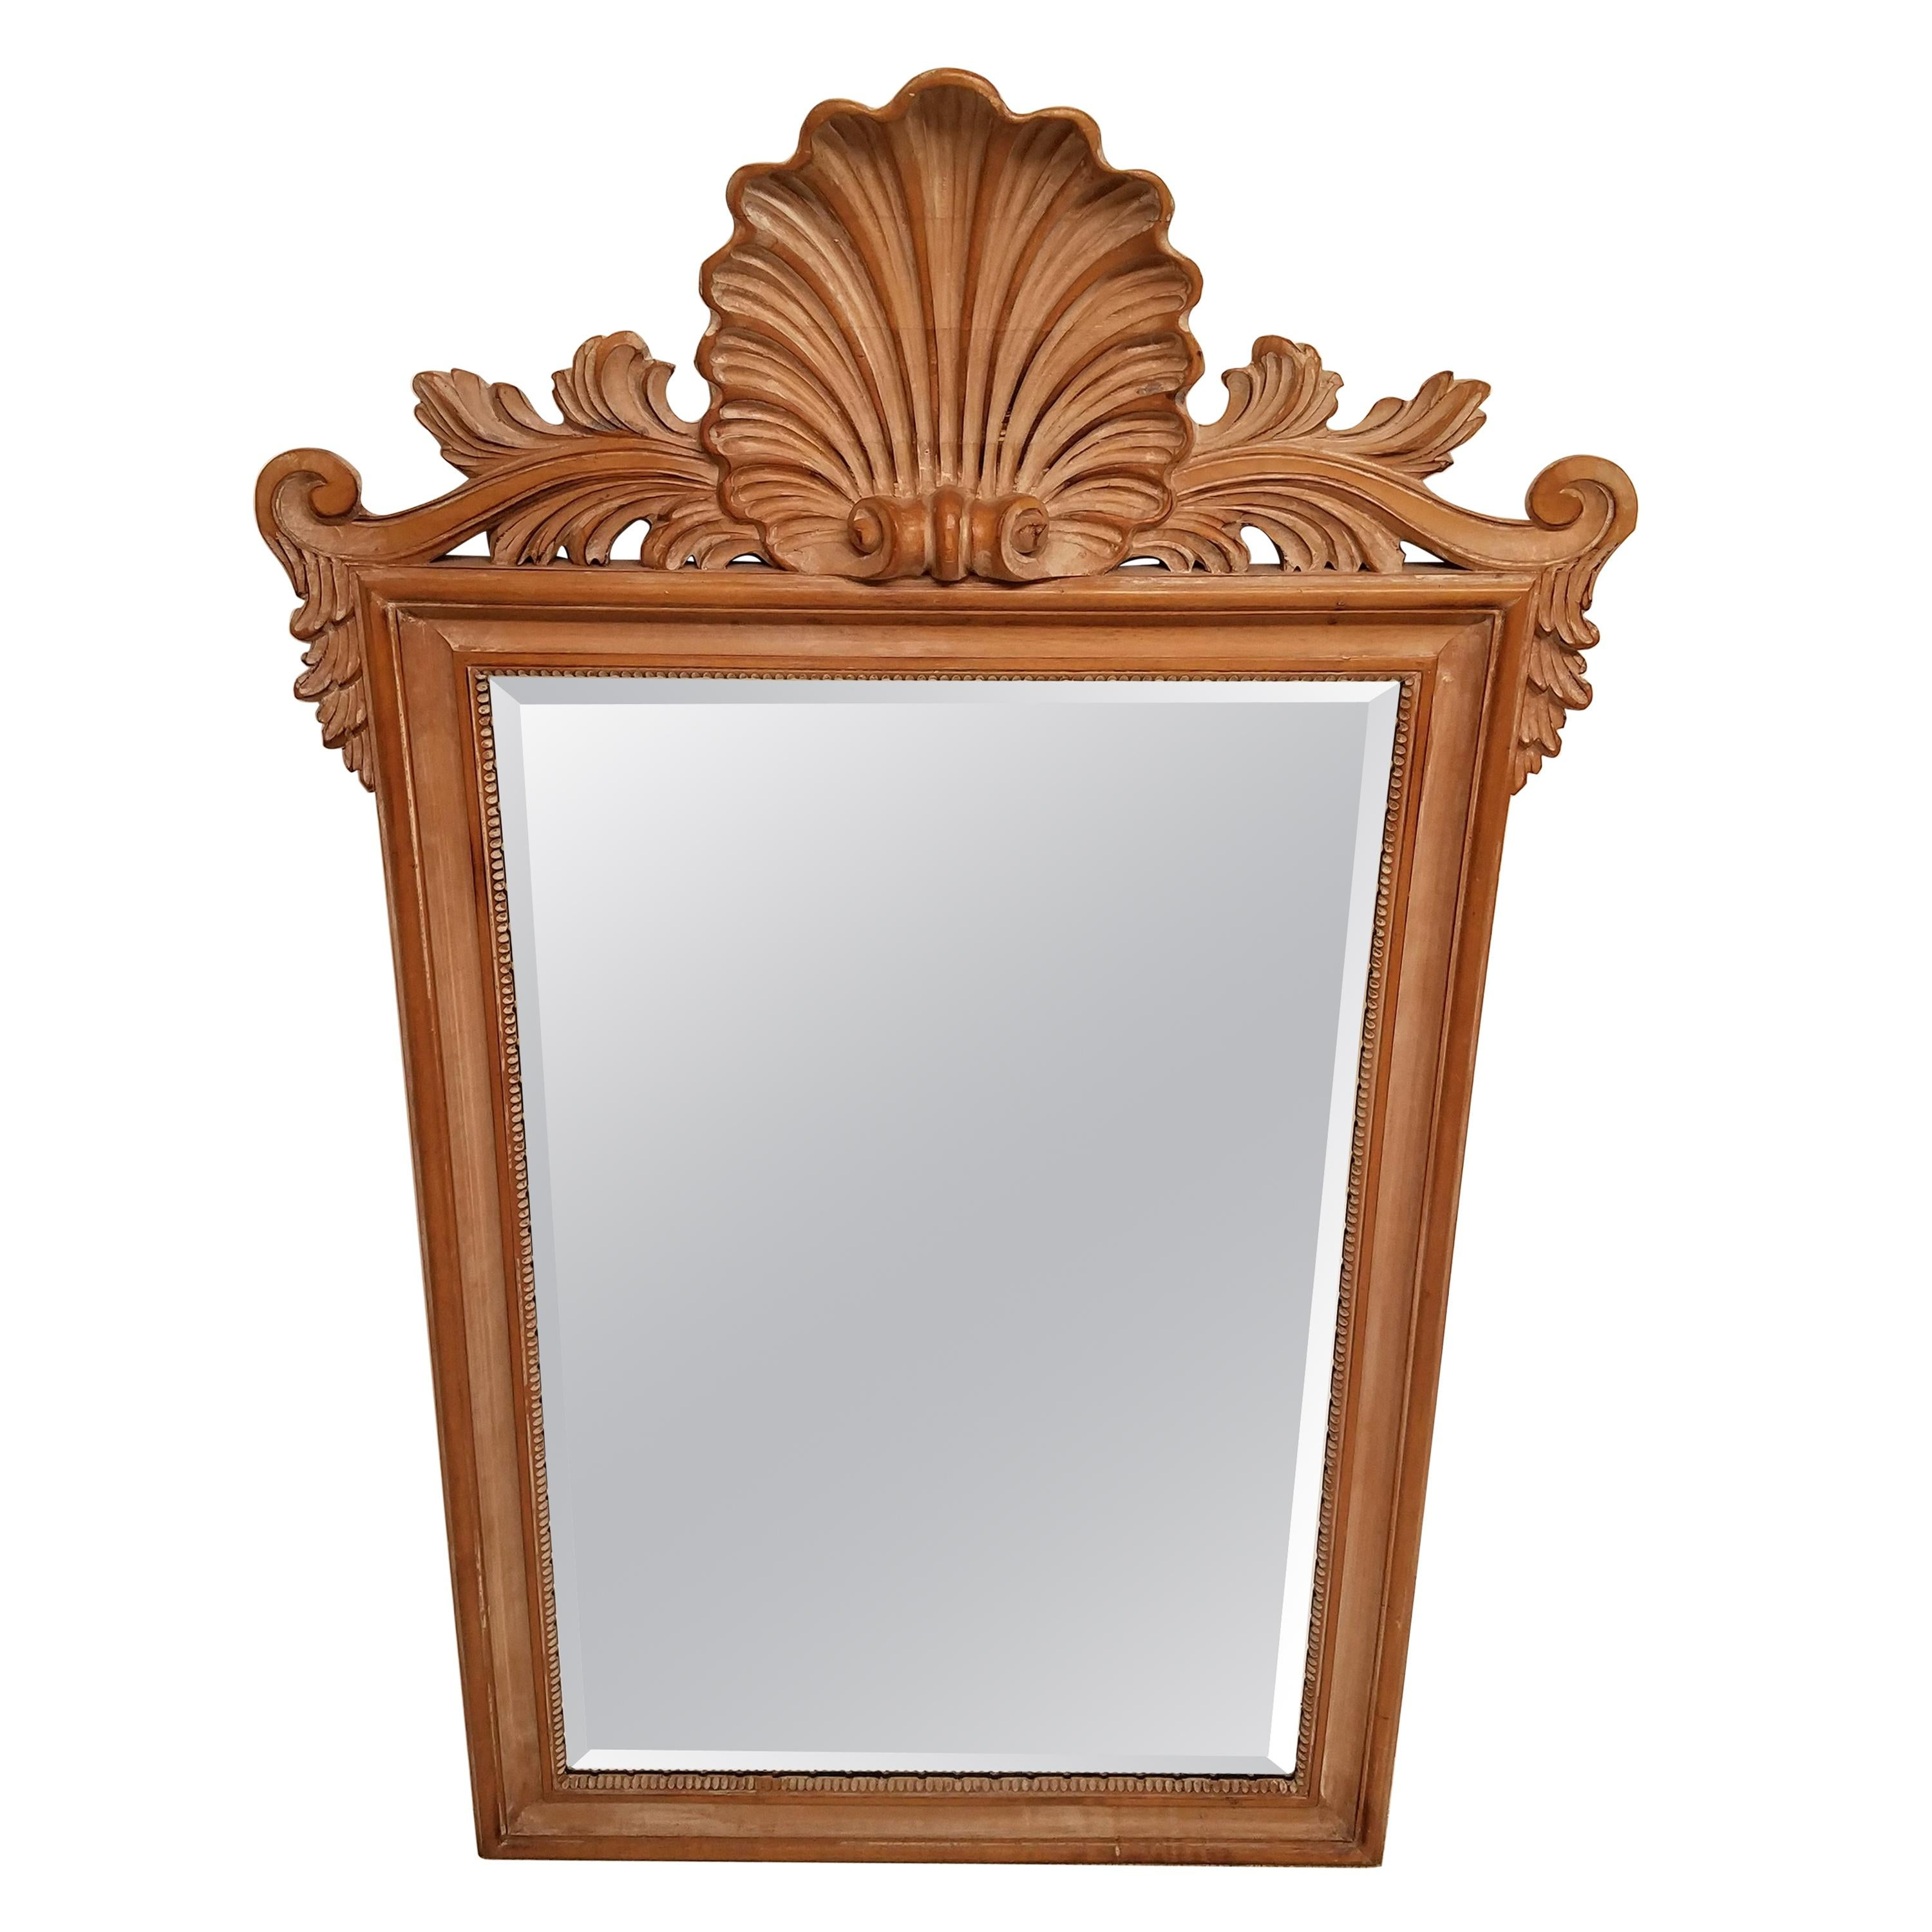 La Barge Bleach Fruitwood Carved Shell Beveled Mirror, Italy